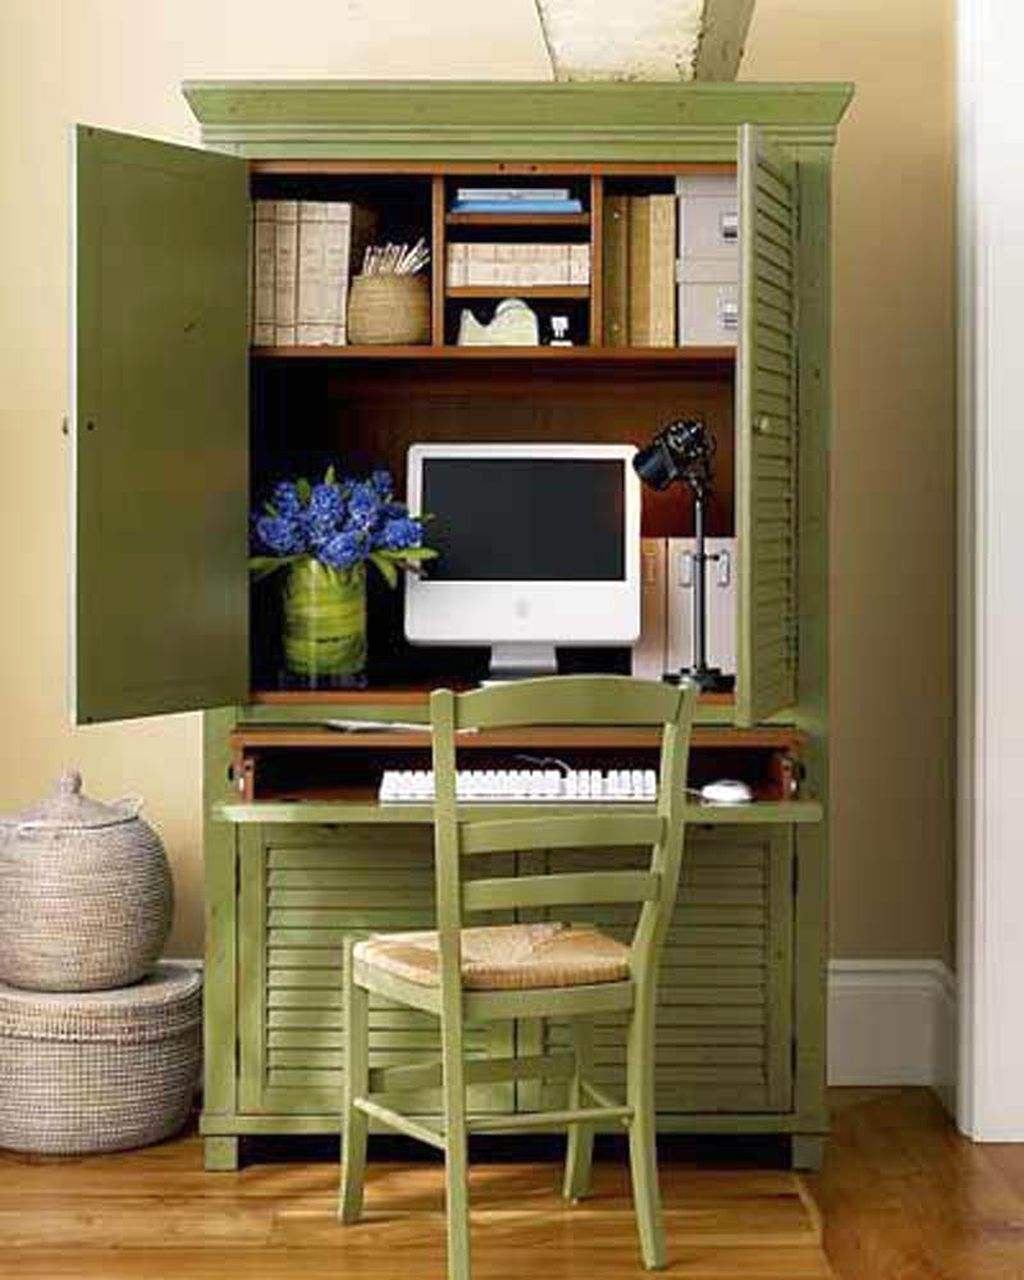 Green cupboard home office design ideas for small spaces for Home office desks for small spaces